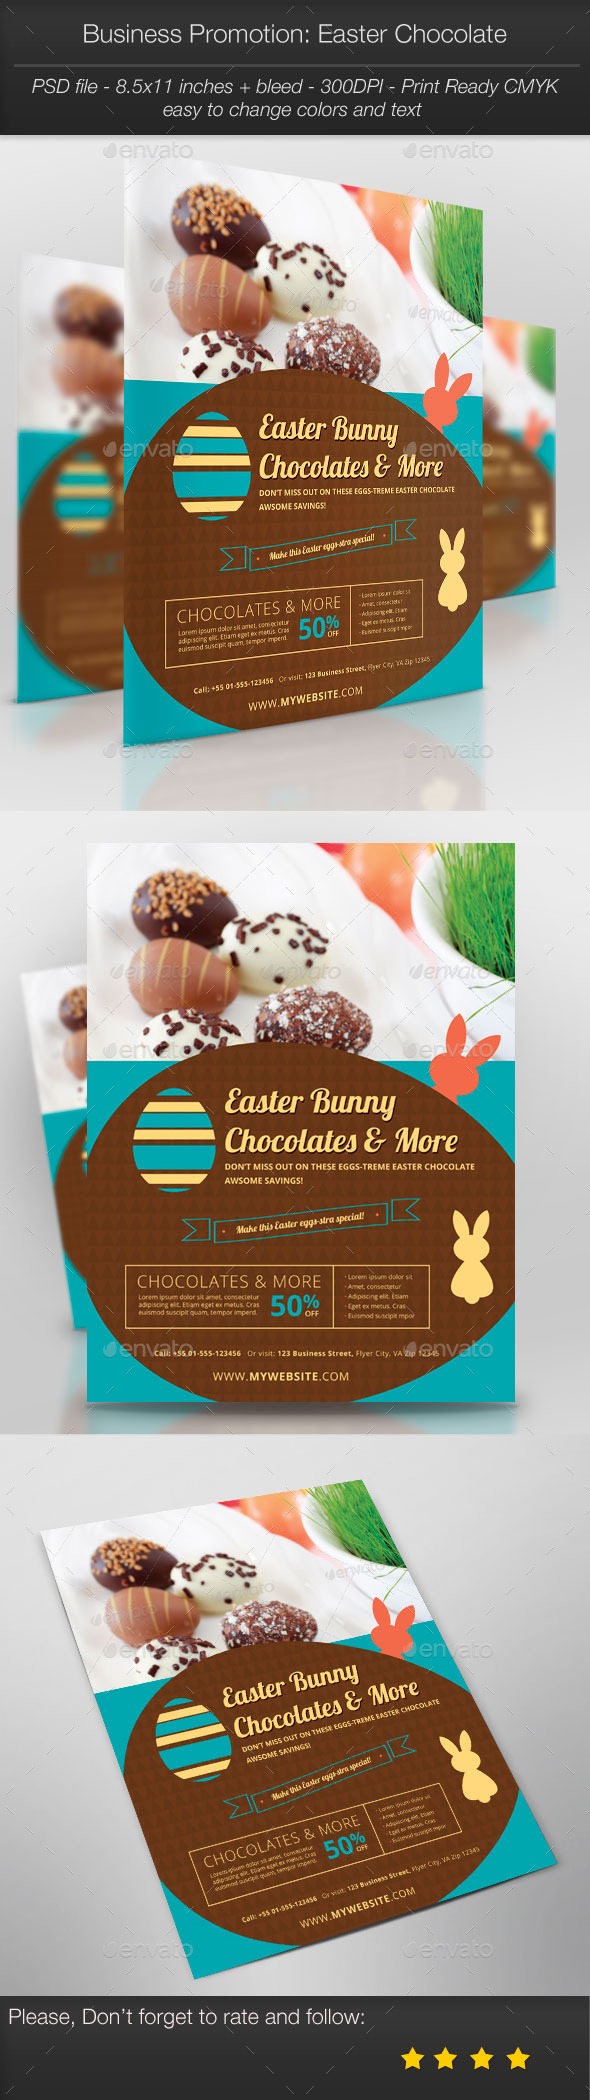 GraphicRiver Business Promotion Easter Chocolate 10870307